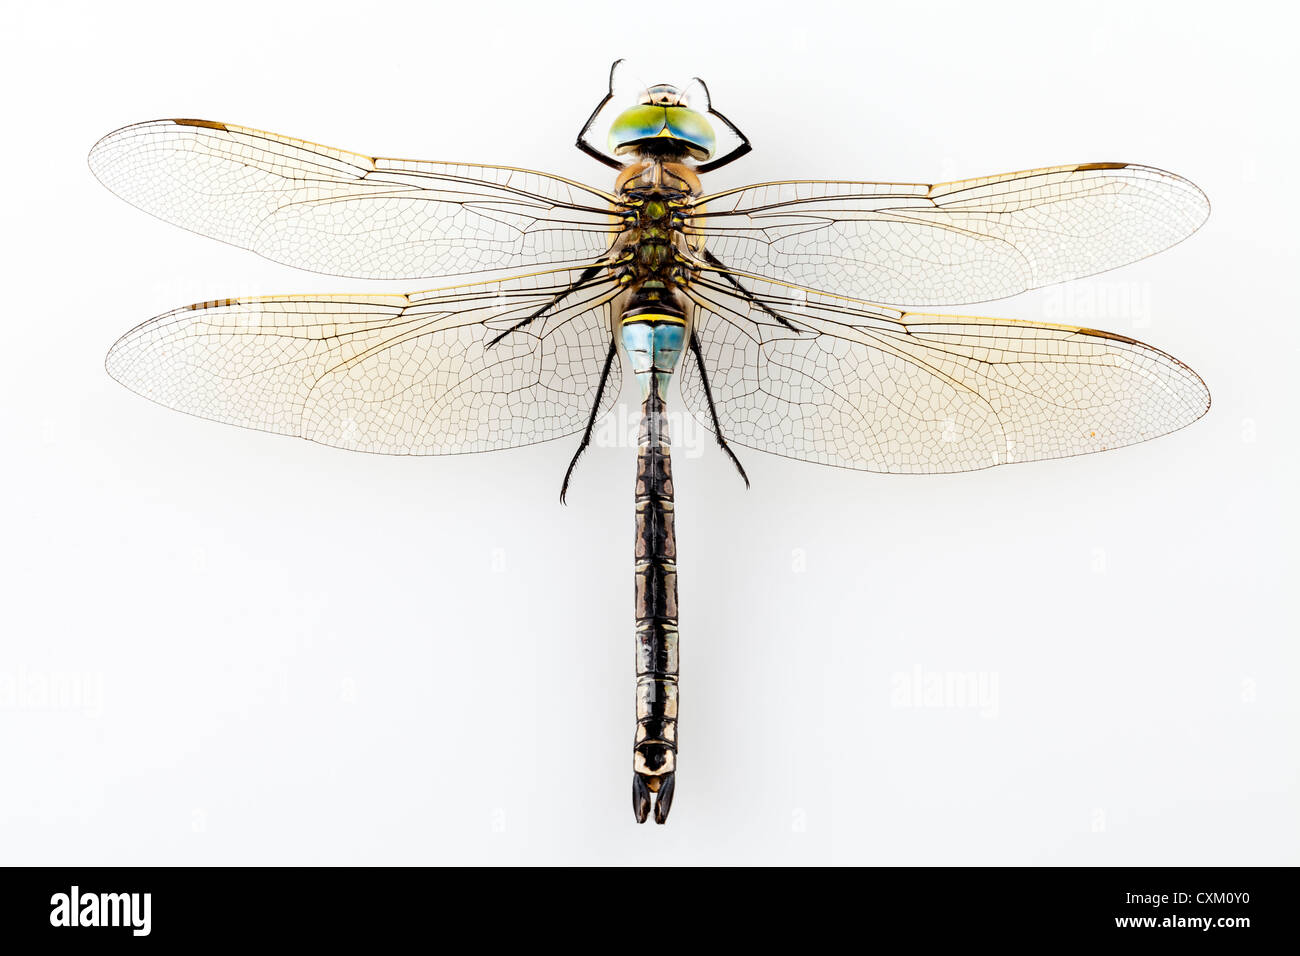 Dragonfly Anax parthenope isolated on white background - Stock Image